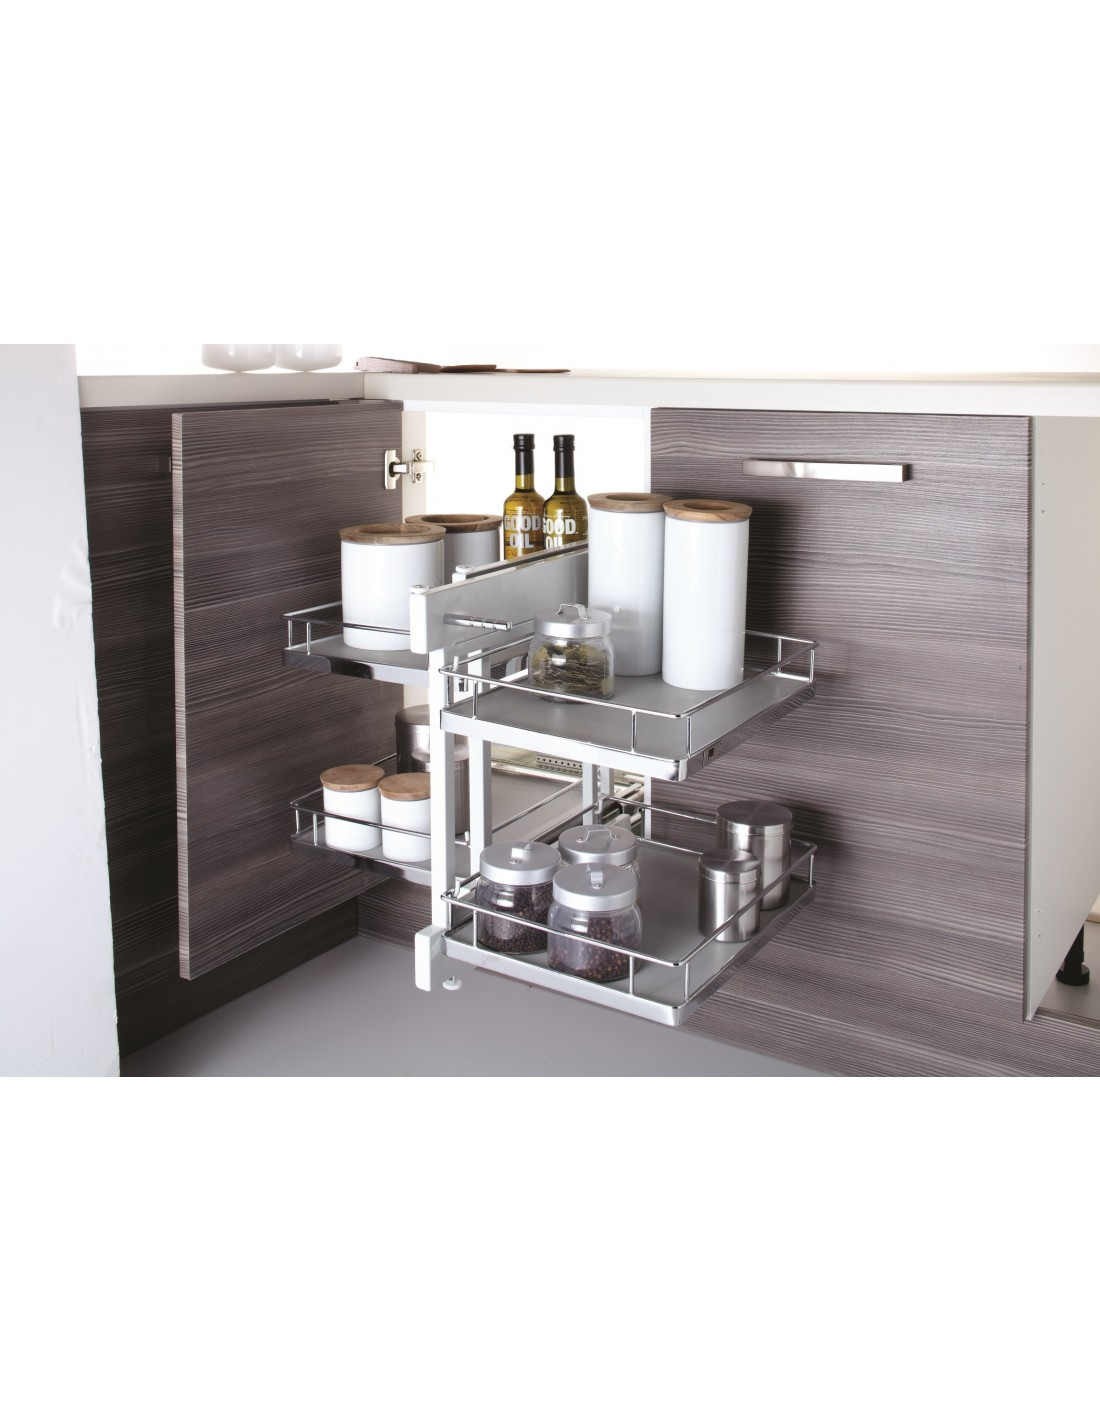 800mm blind corner storage east coast kitchens for Kitchen base unit shelf